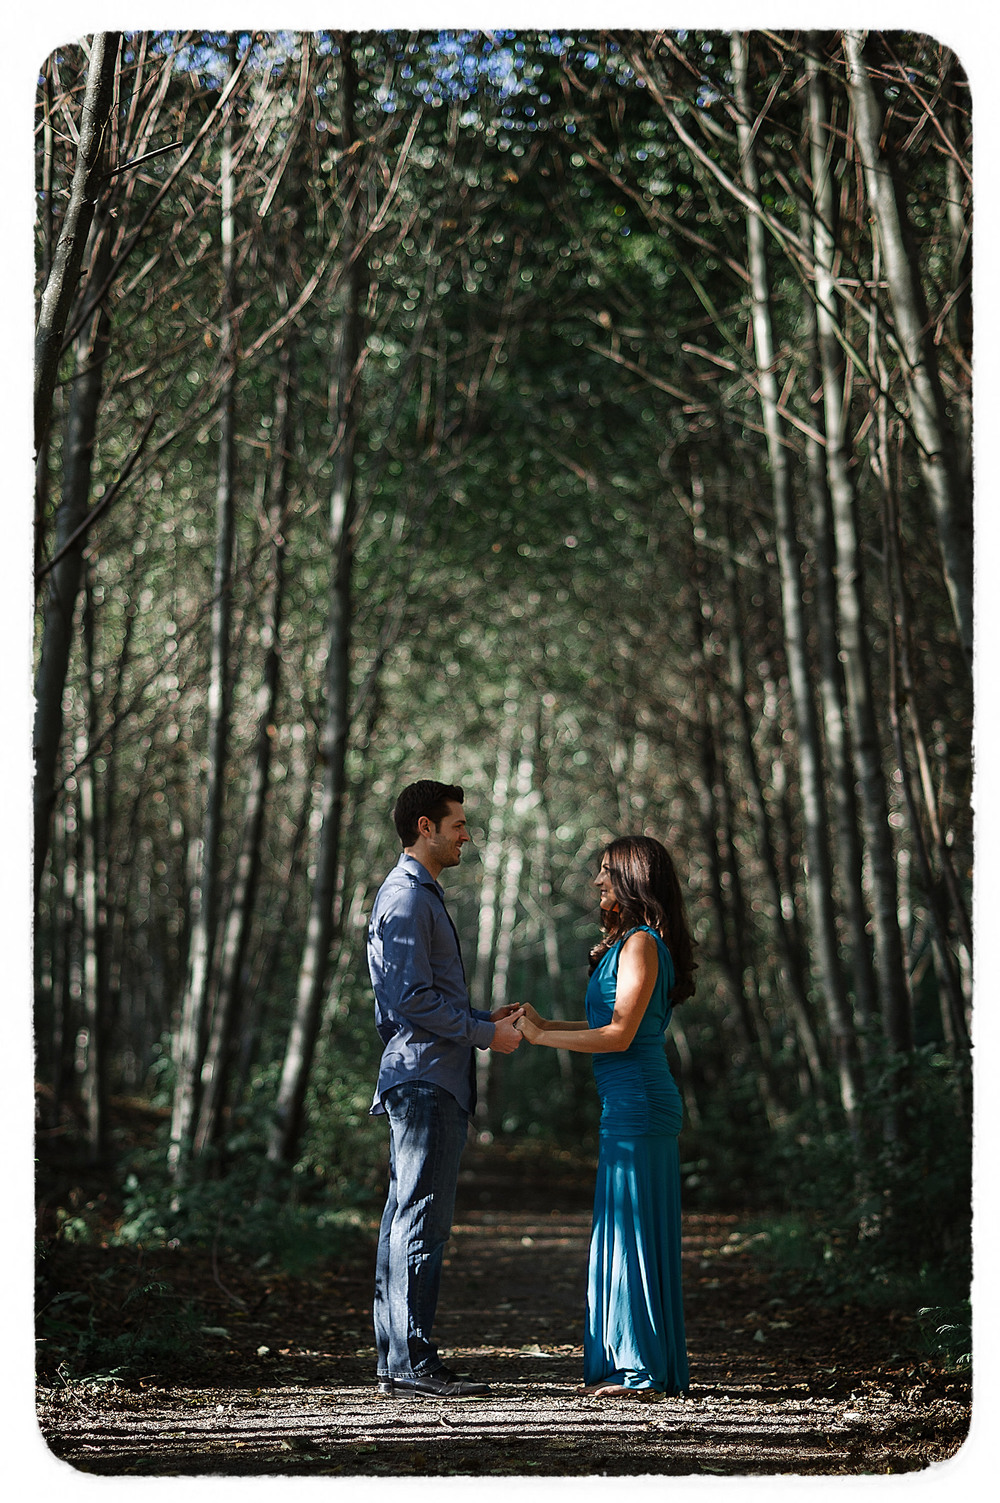 Kelly&Mike-EngagementSession-OriginalCollection-26Film.jpg